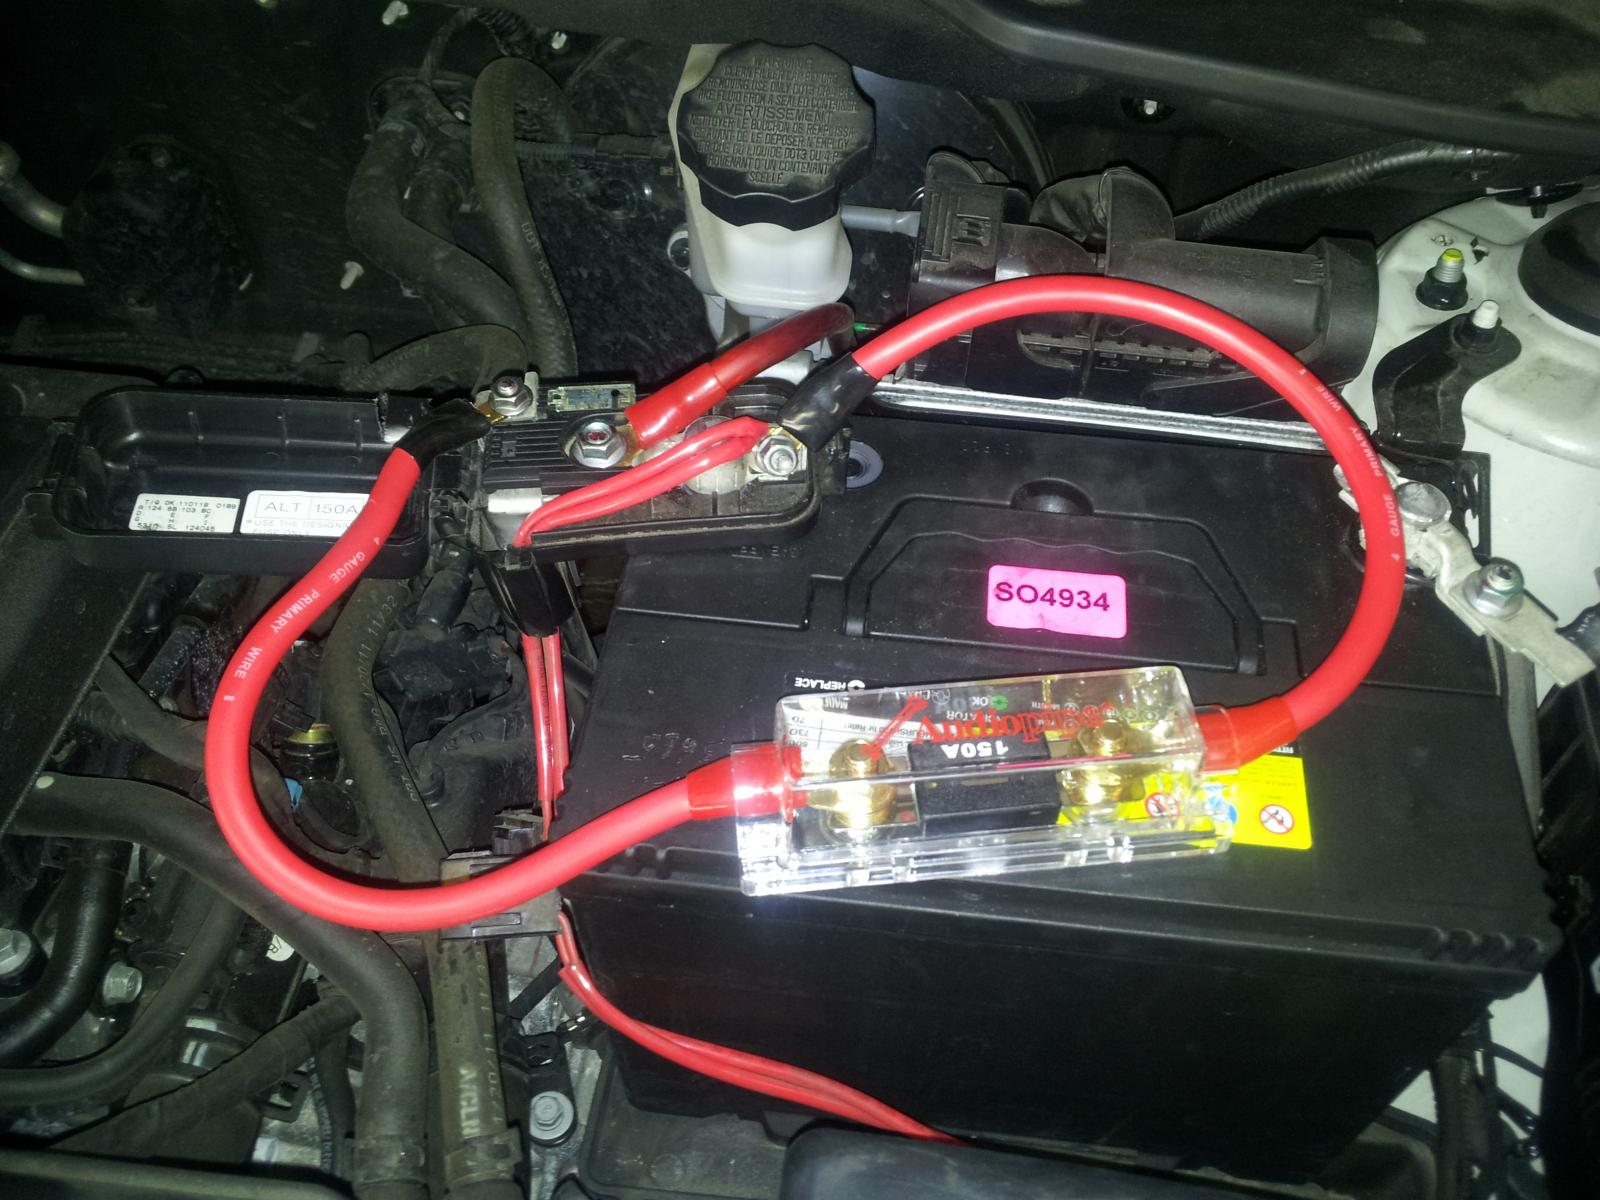 battery positive terminal fuse   150 amp   kia forum 98 mustang gt fuse box